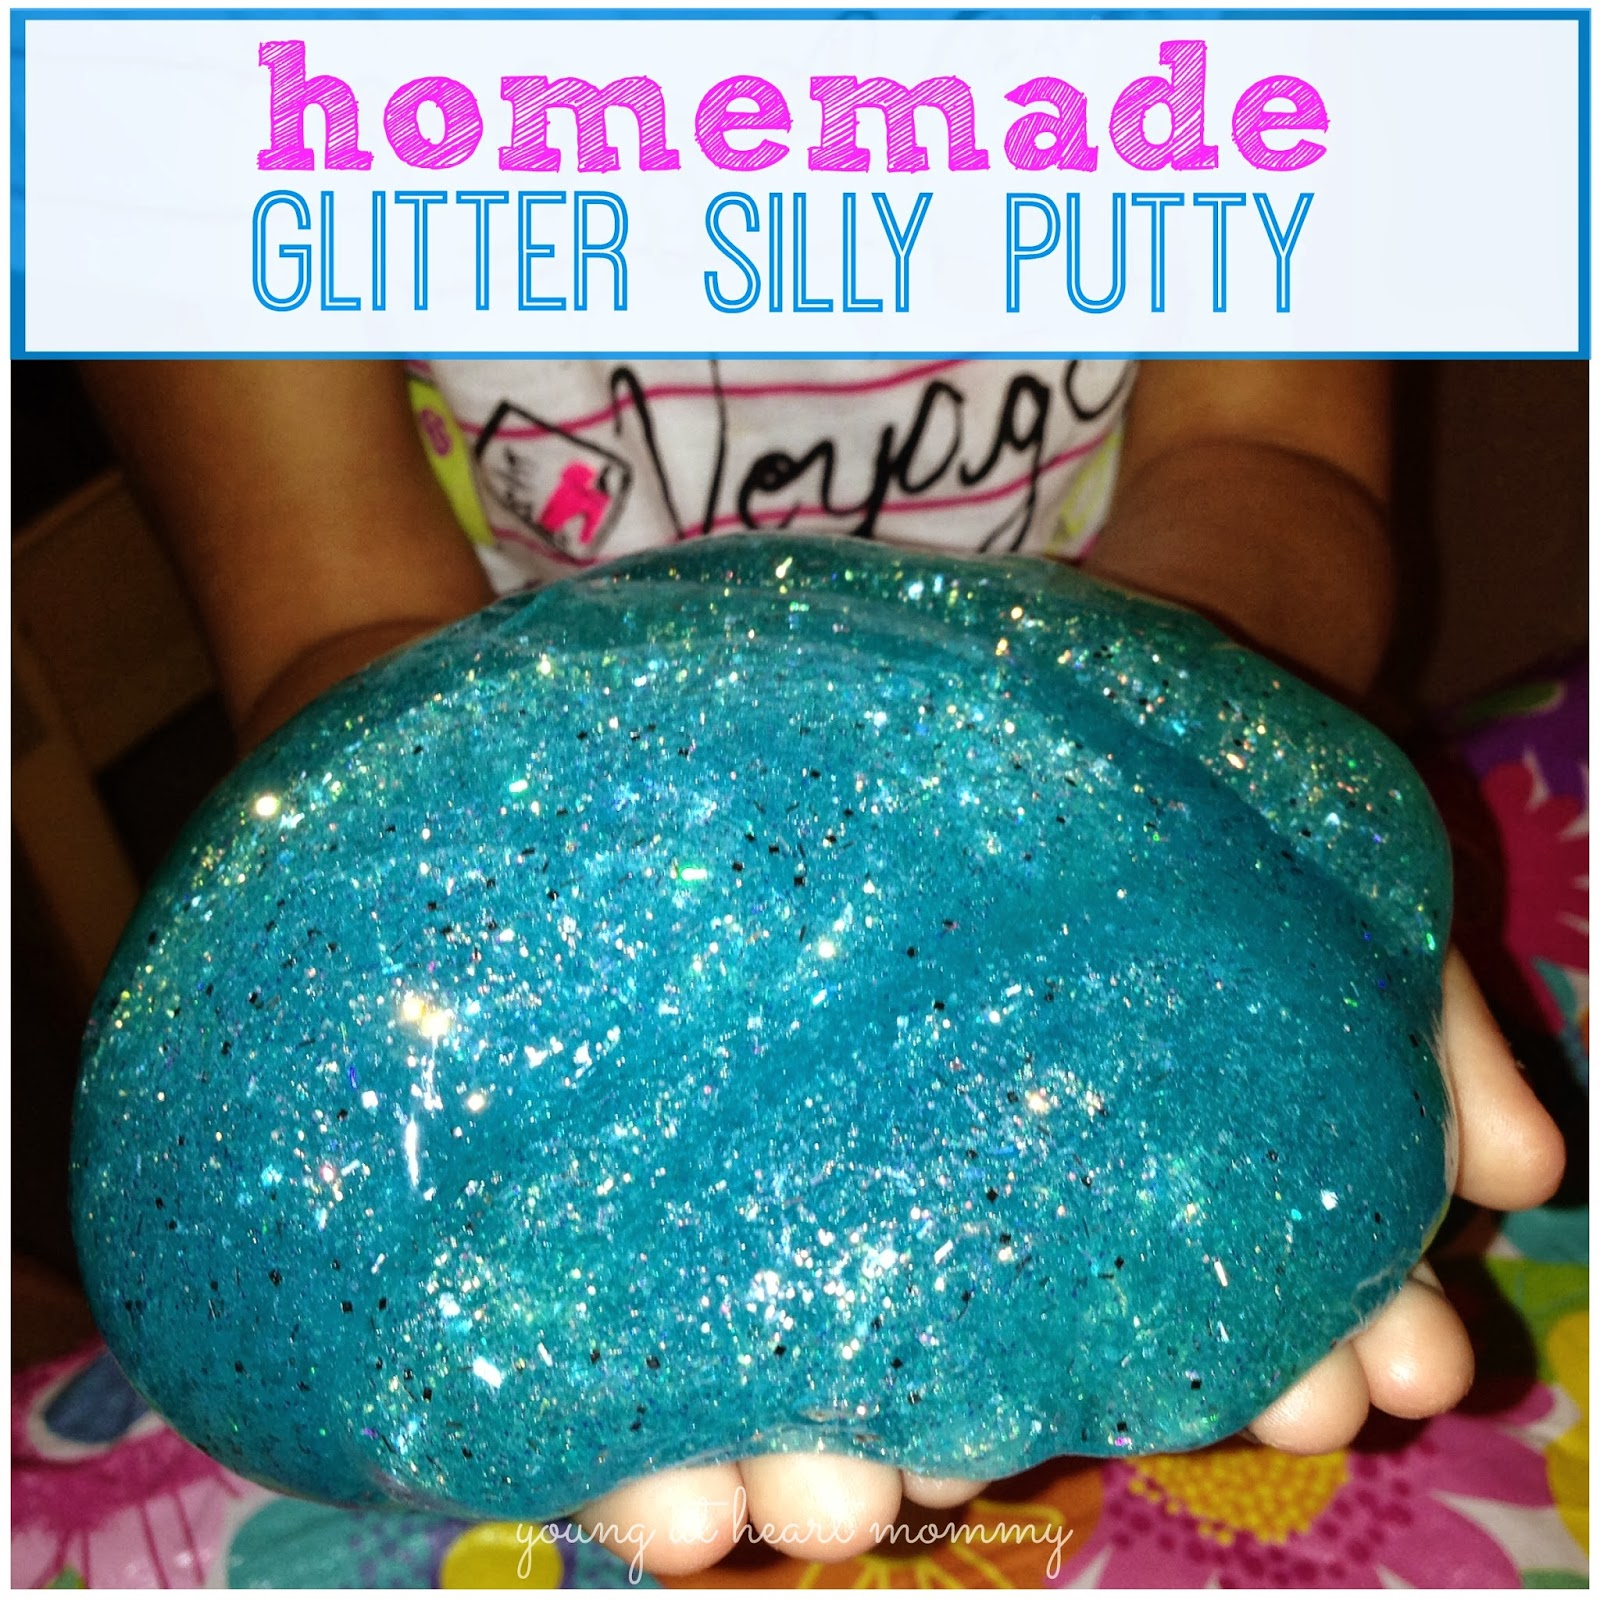 how to make clear putty without borax